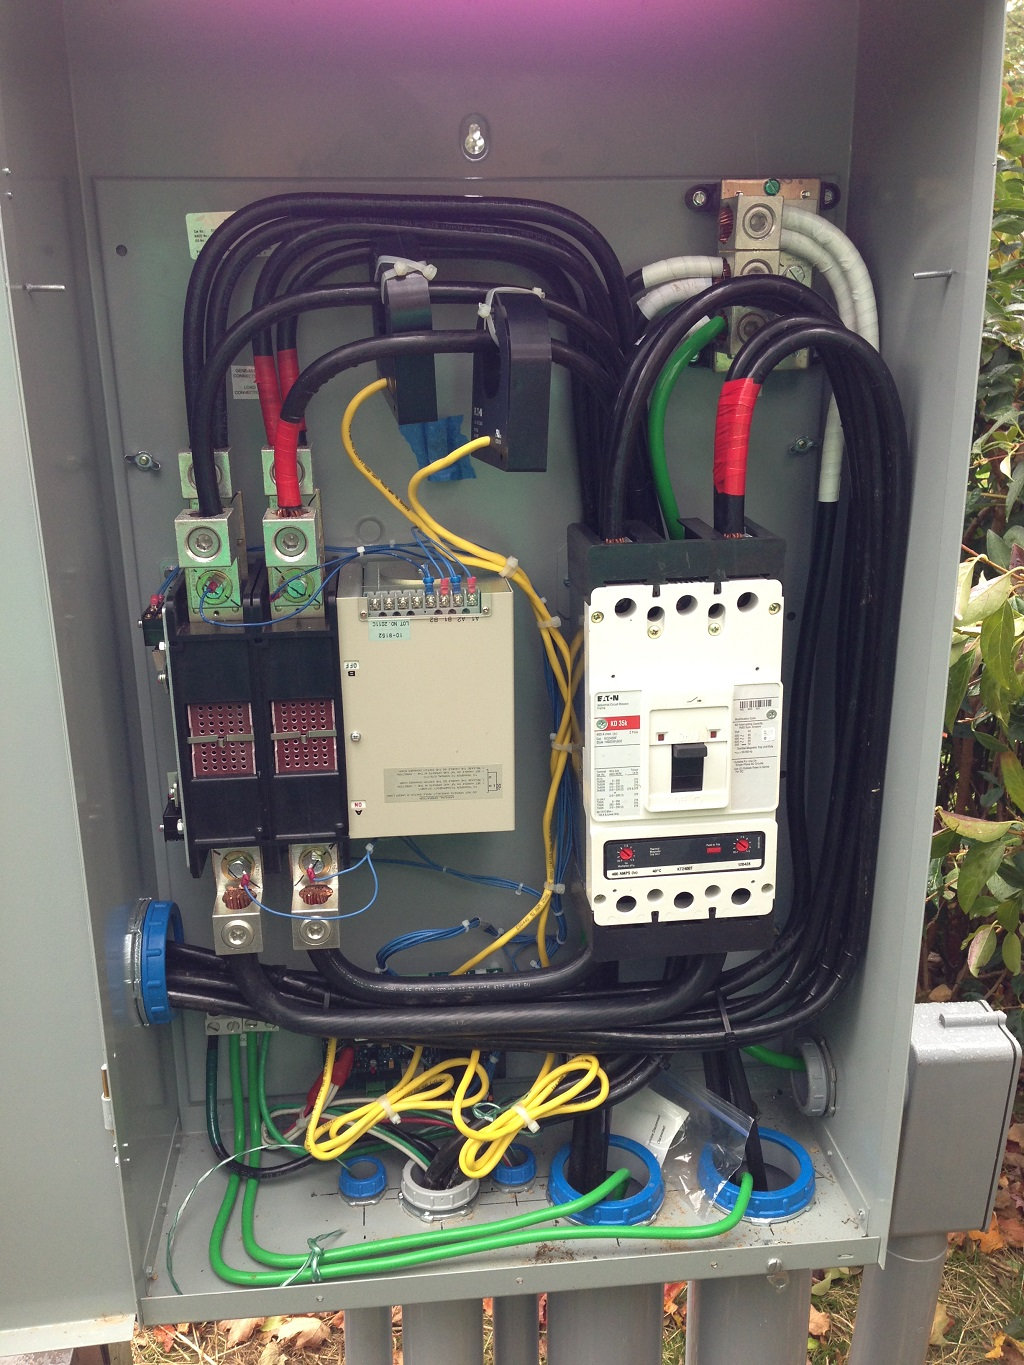 afci wiring with Transfer Switches on Transfer Switches additionally Fronius Ig Plus Advanced Inverter Line Meets Nec Requirements furthermore All p6 moreover mercial grade receptacles 15a 250v nema 6 15r 826 together with Power receptacles 50a 250v nema 6 50 2 pole 3 wire 1254 5709n 1252.